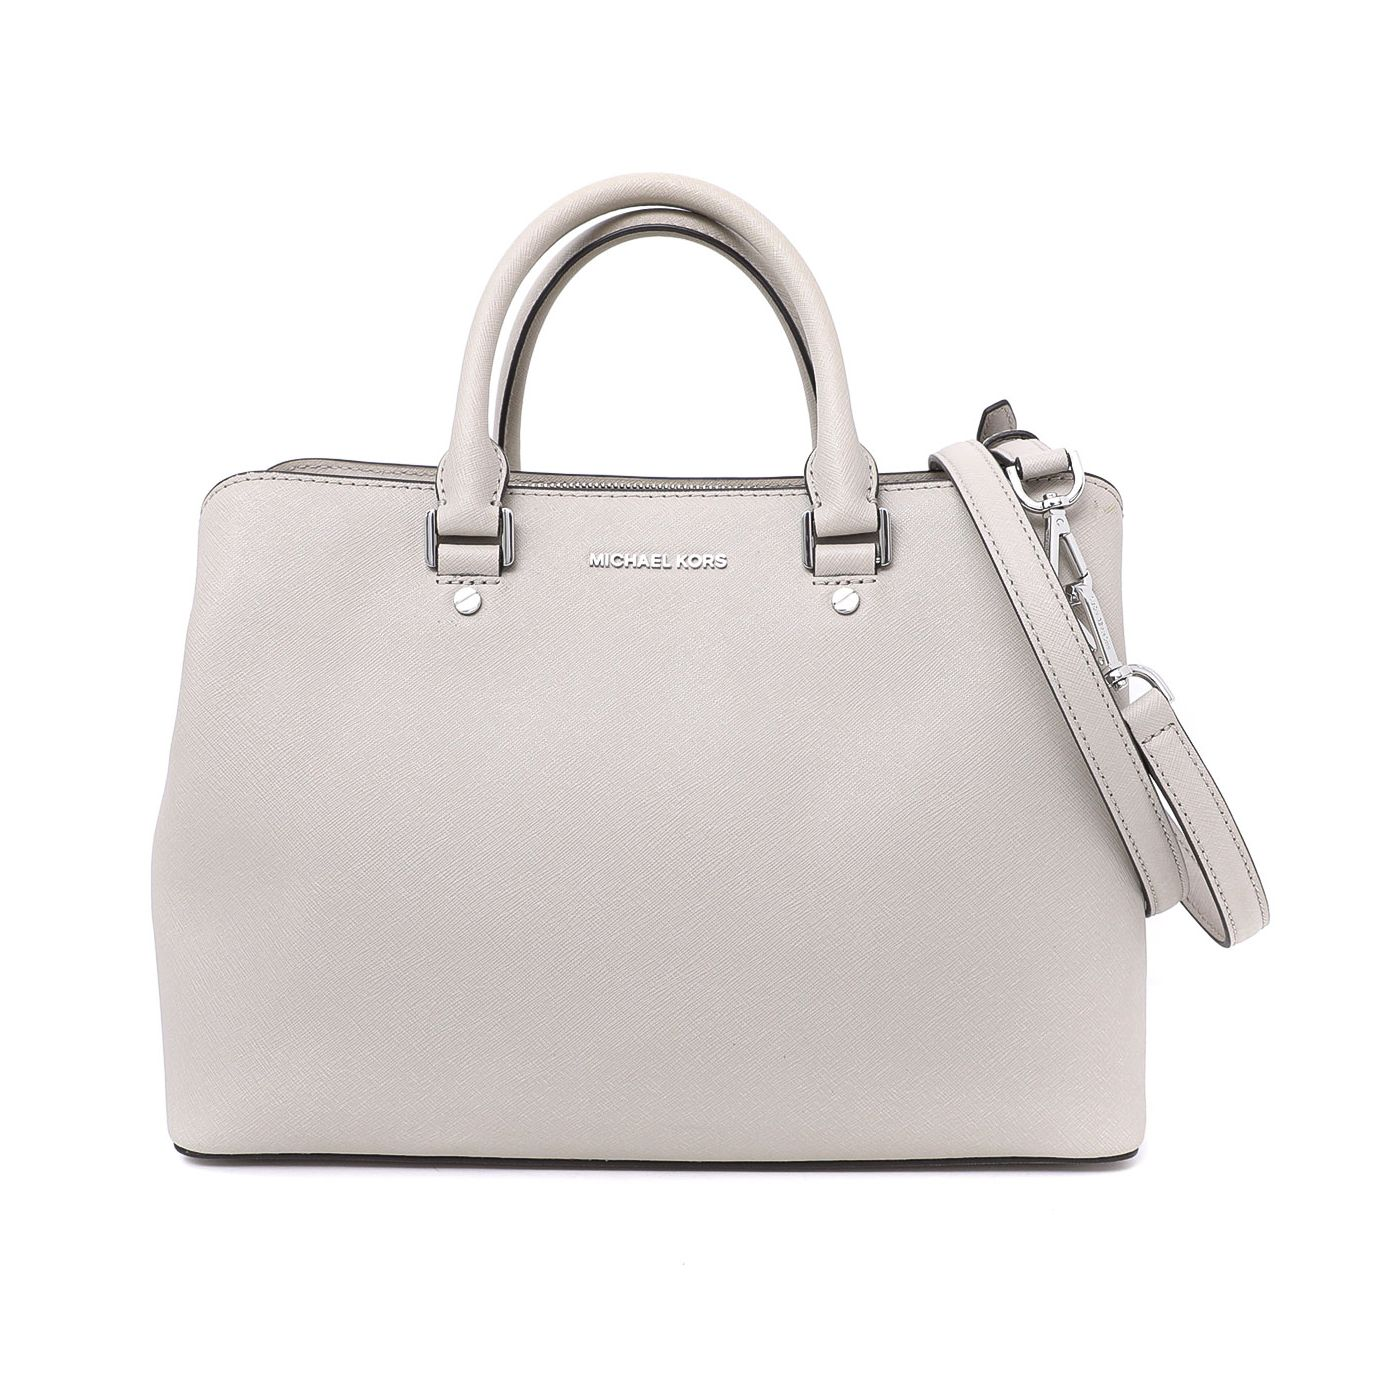 Michael Kors Grey Savannah Tote Bag